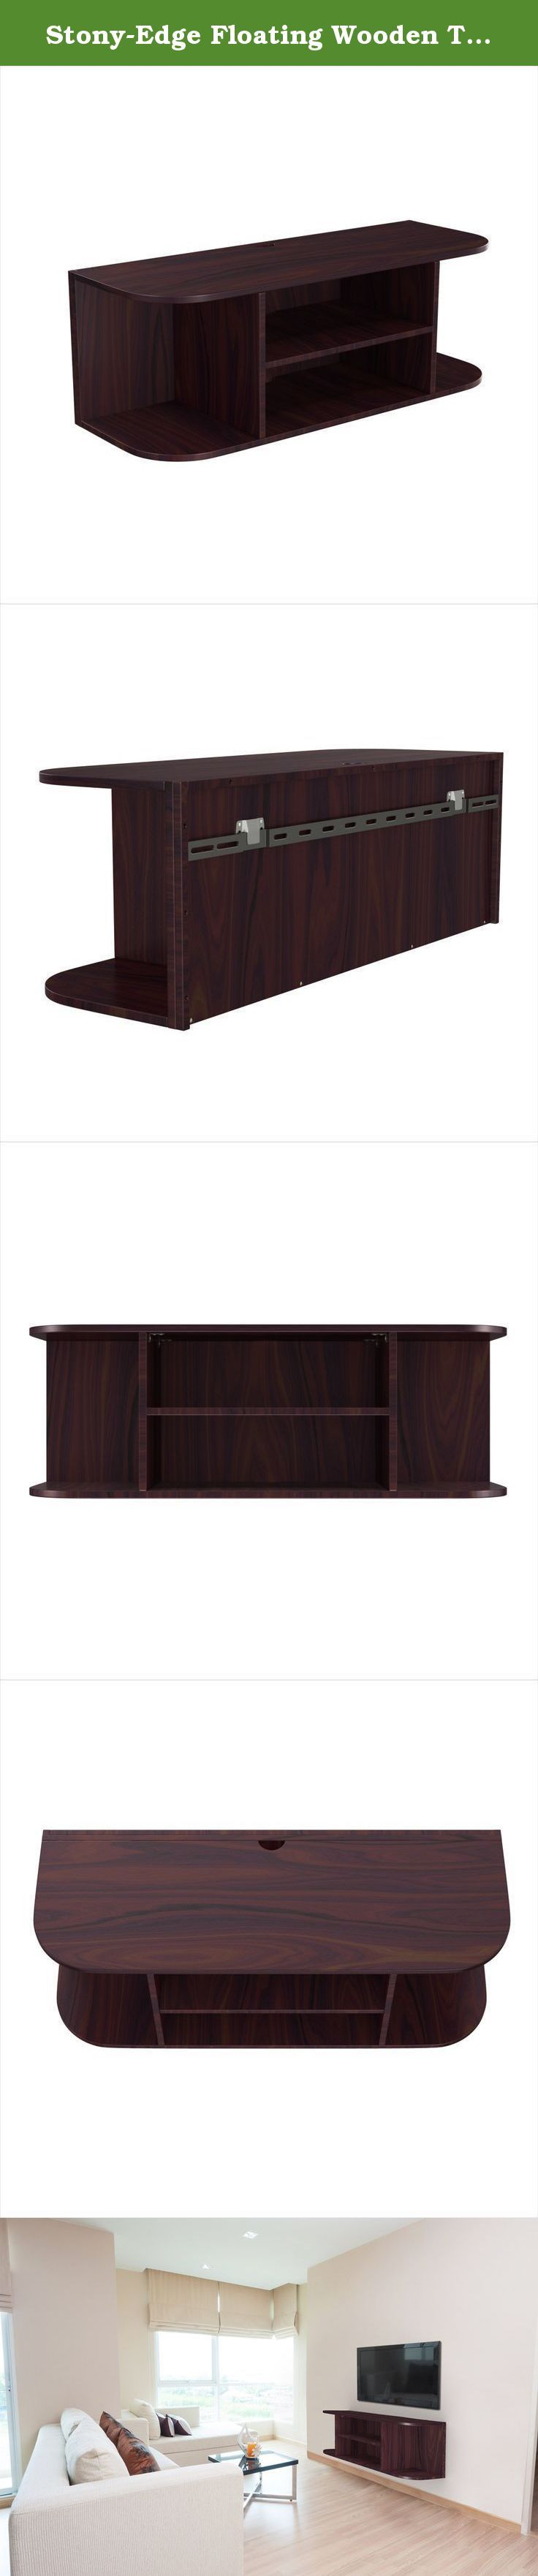 Stony-Edge Floating Wooden TV Wall Mount Shelf (Espresso) - Mounted Shelves for Blu-Ray Players, Video Game Consoles, Cable Boxes, Speakers - Easy to Assemble Furniture. Dress up the new mounted LED flat screen by installing a floating wall shelf for your electronics right below it! Do you have a new LCD, LED or 4K TV mounted to your living room wall, but still have the plain, boring and overly large entertainment center taking up space below it? Then you need the Stony-Edge Floating…